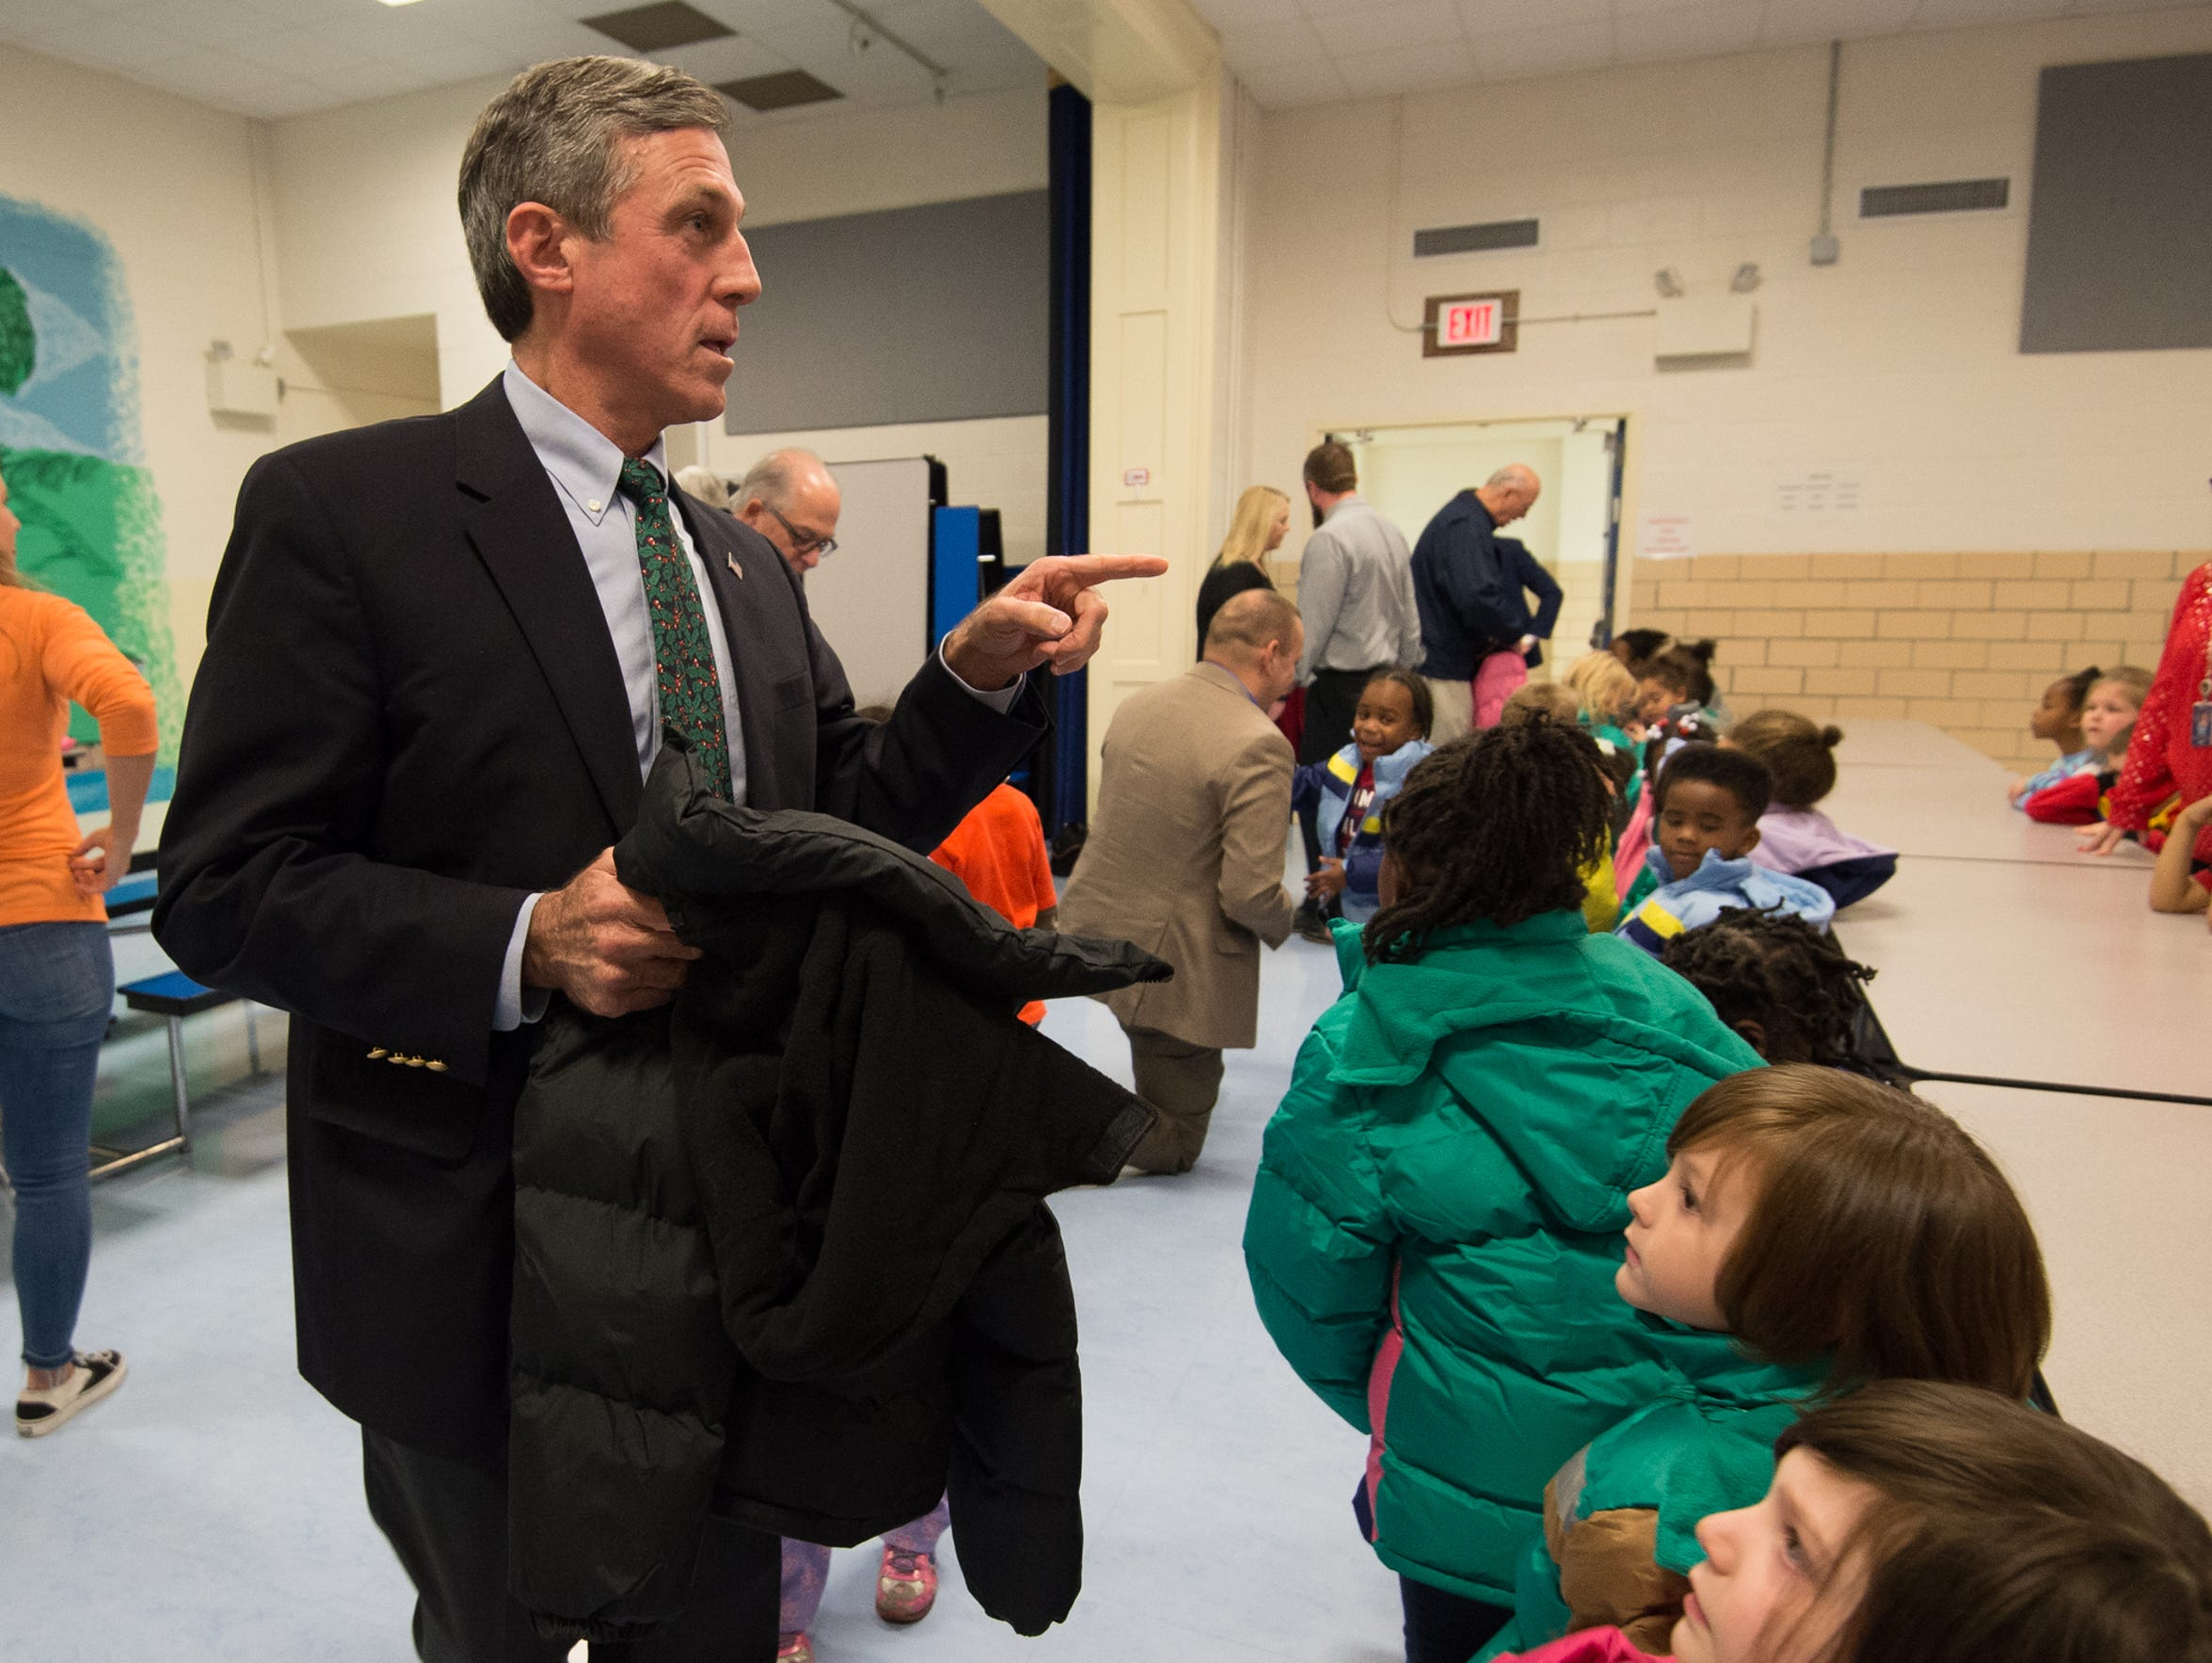 Governor John Carney helps hand out winter coats at